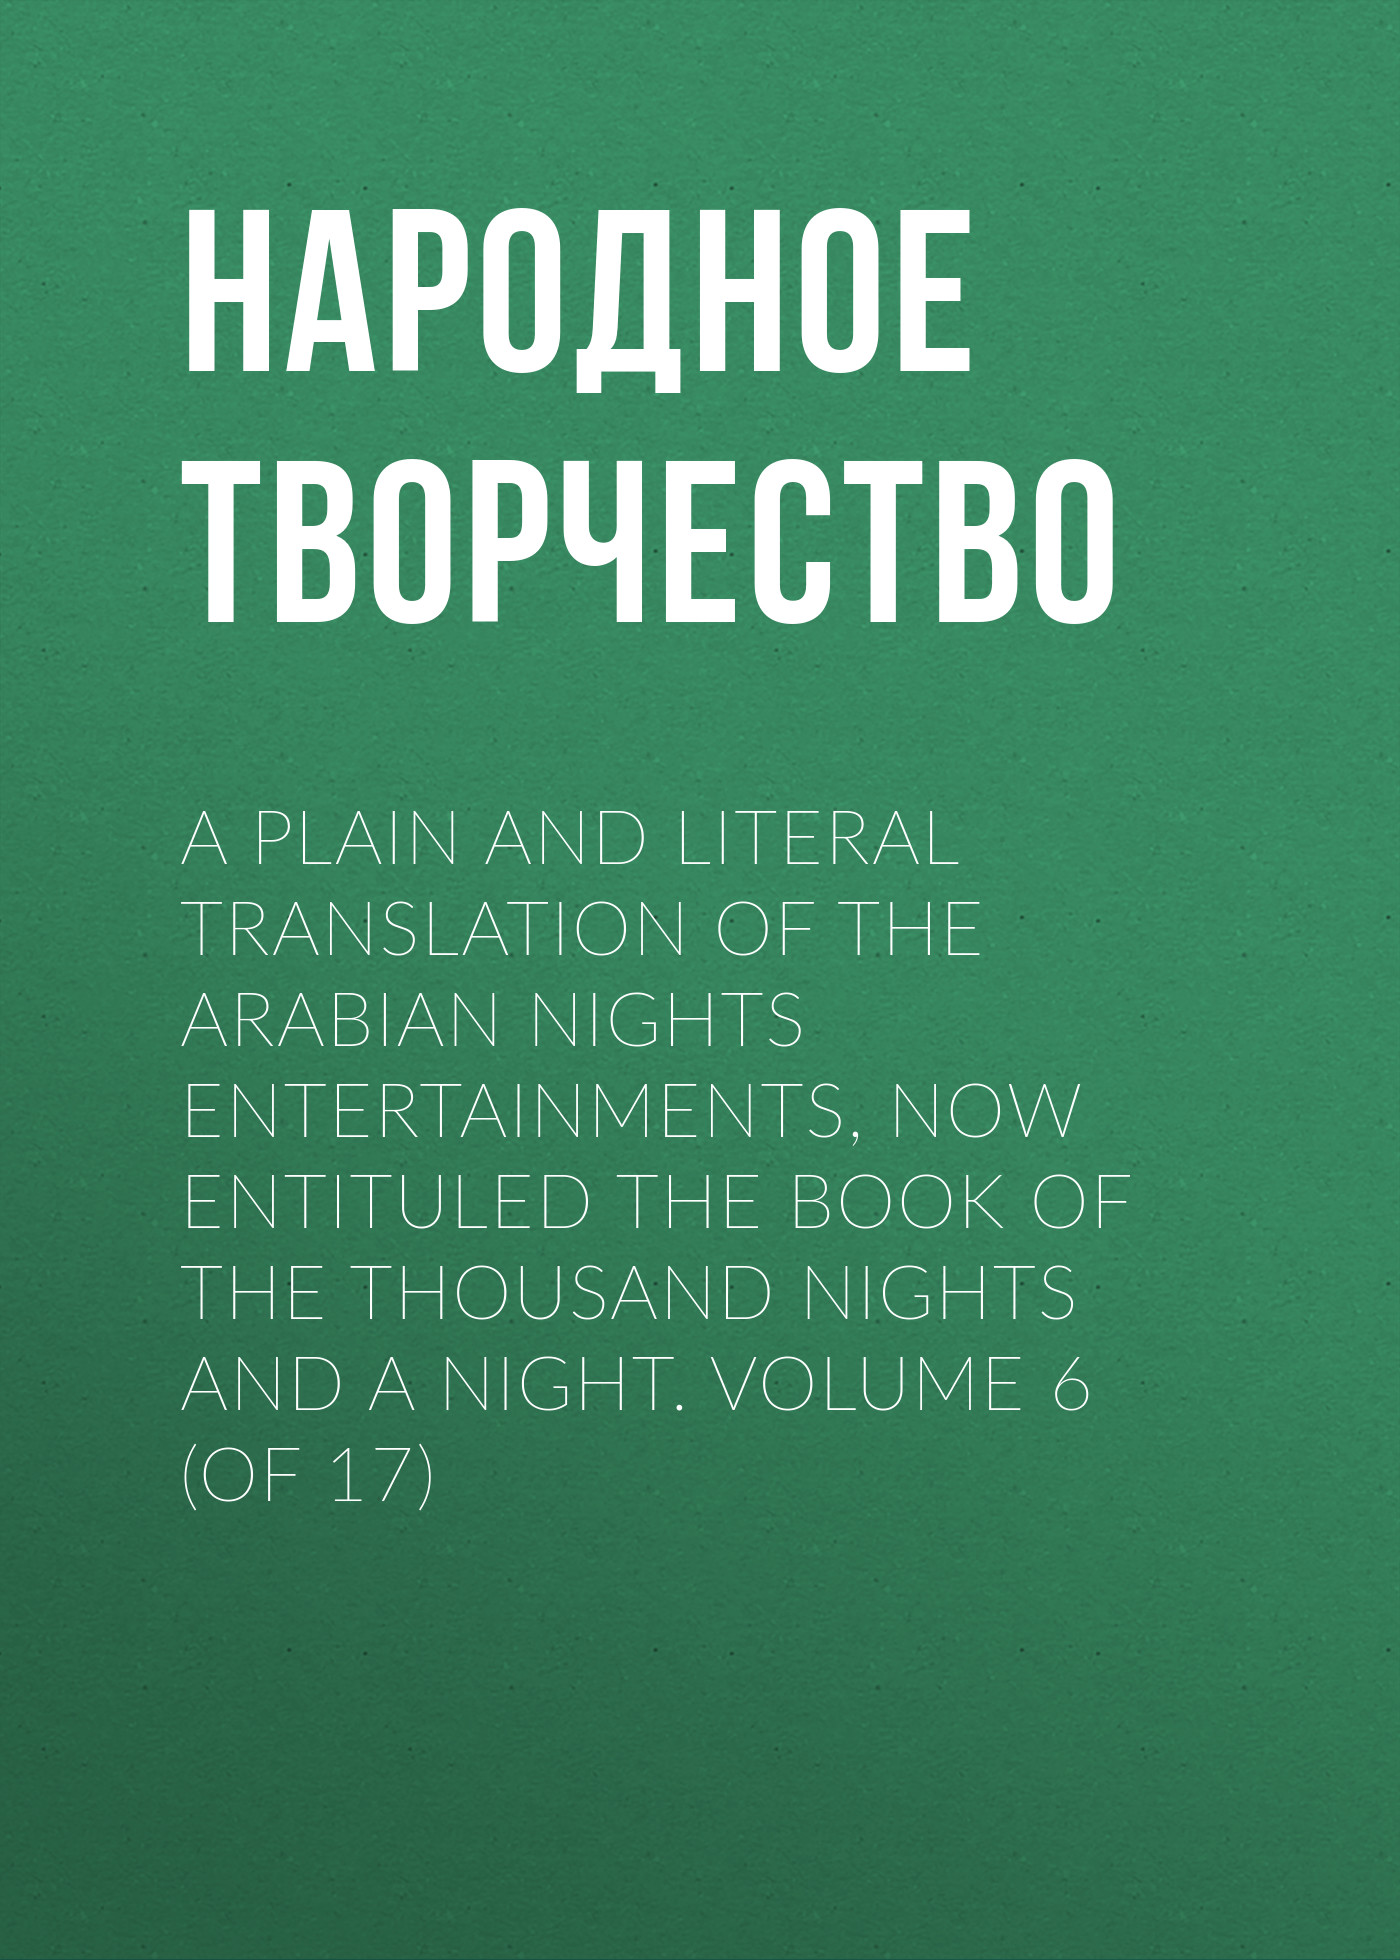 Народное творчество A plain and literal translation of the Arabian nights entertainments, now entituled The Book of the Thousand Nights and a Night. Volume 6 (of 17)